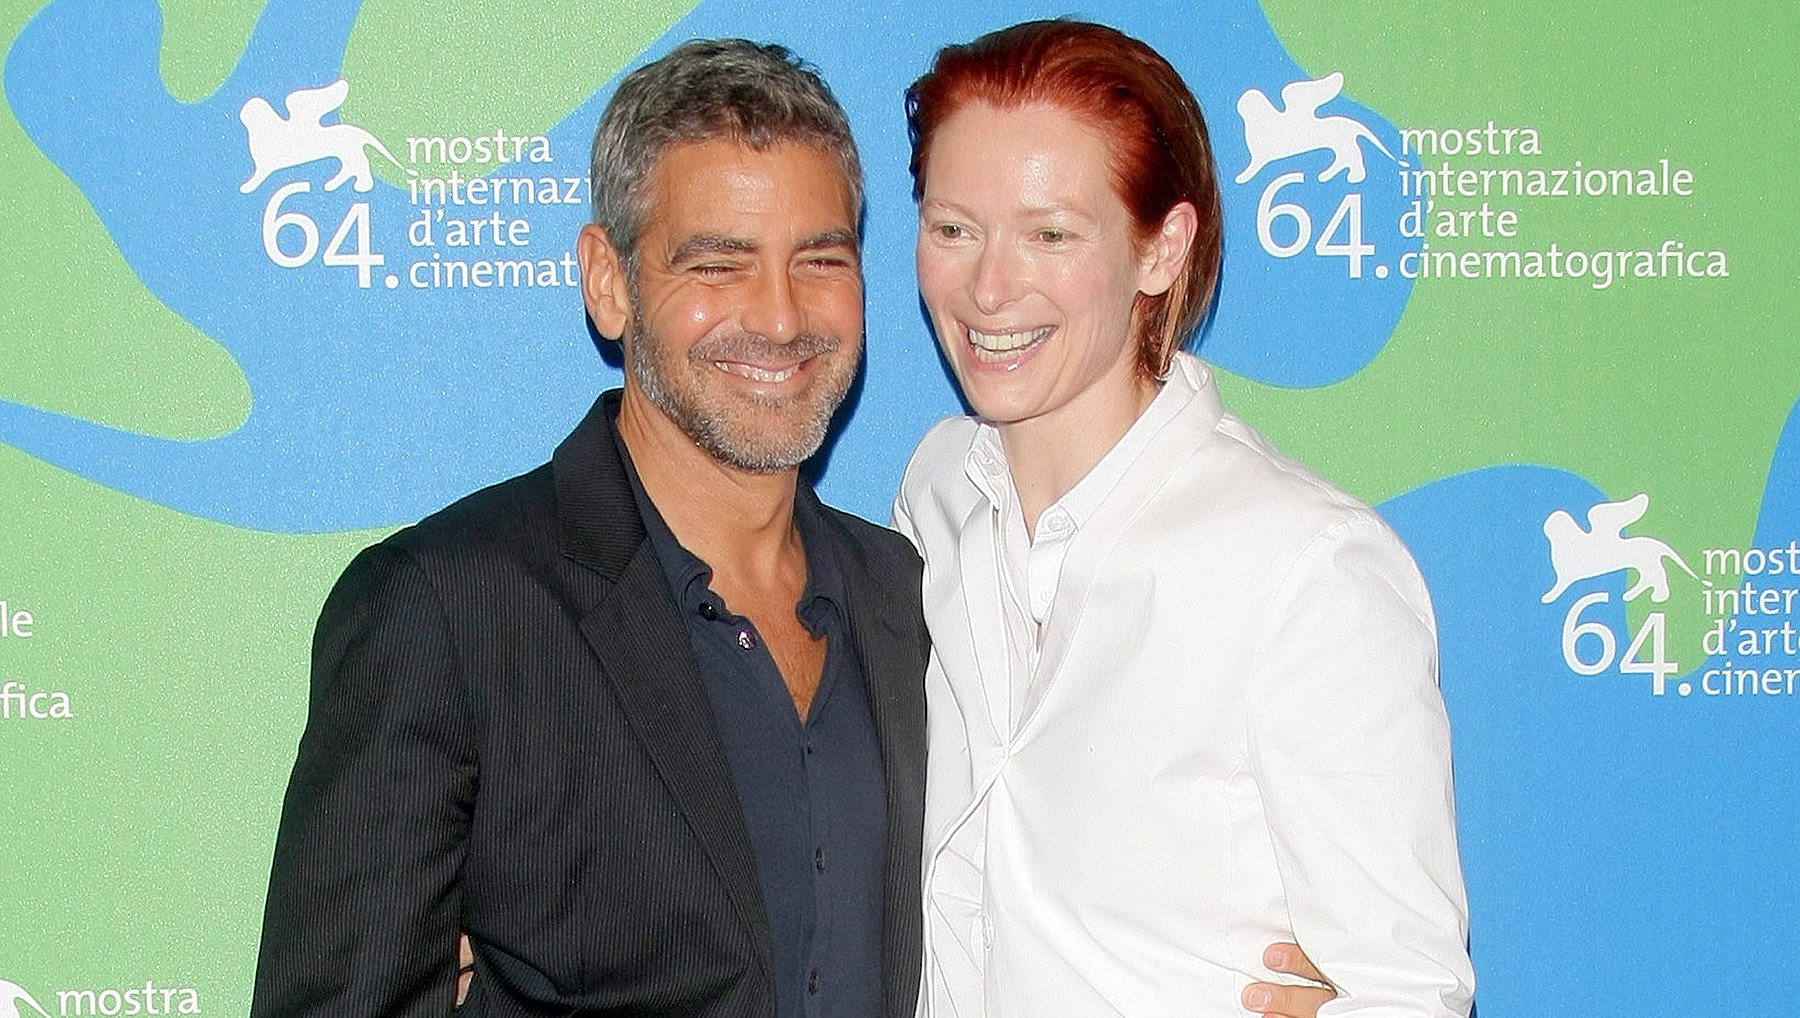 George-Clooney-and-Tilda-Swinton